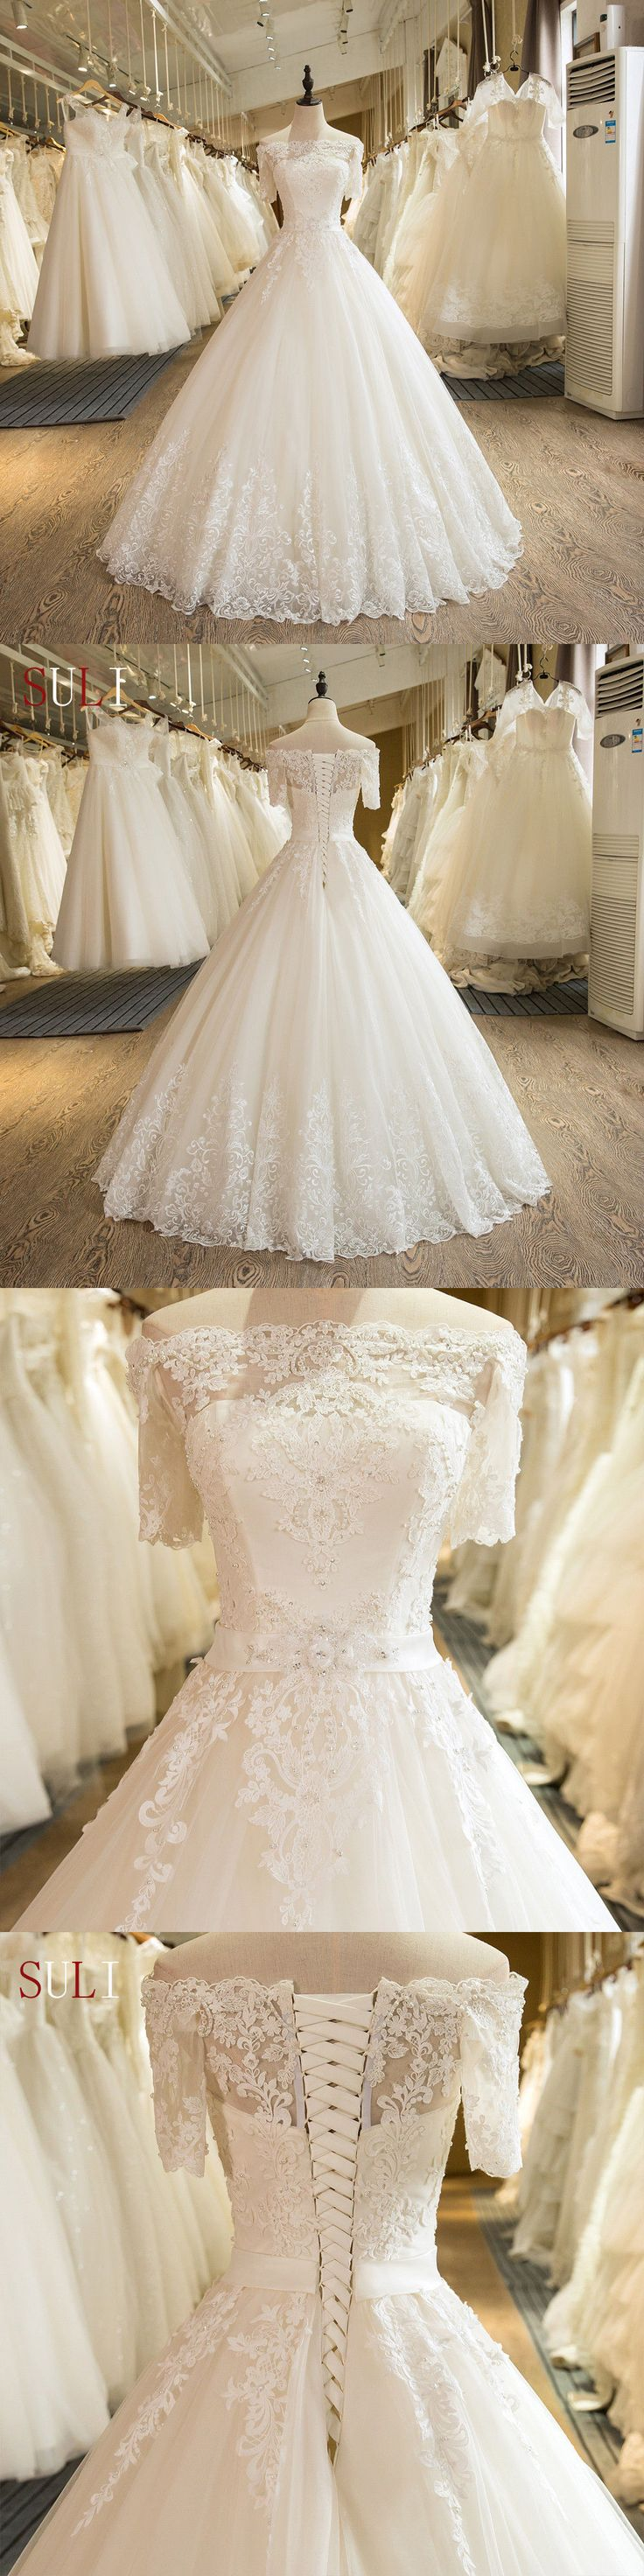 Wedding Dresses: New White Ivory Wedding Dress Bridal Gown Custom Size 6-8-10-12-14-16 18+ -> BUY IT NOW ONLY: $166 on eBay!